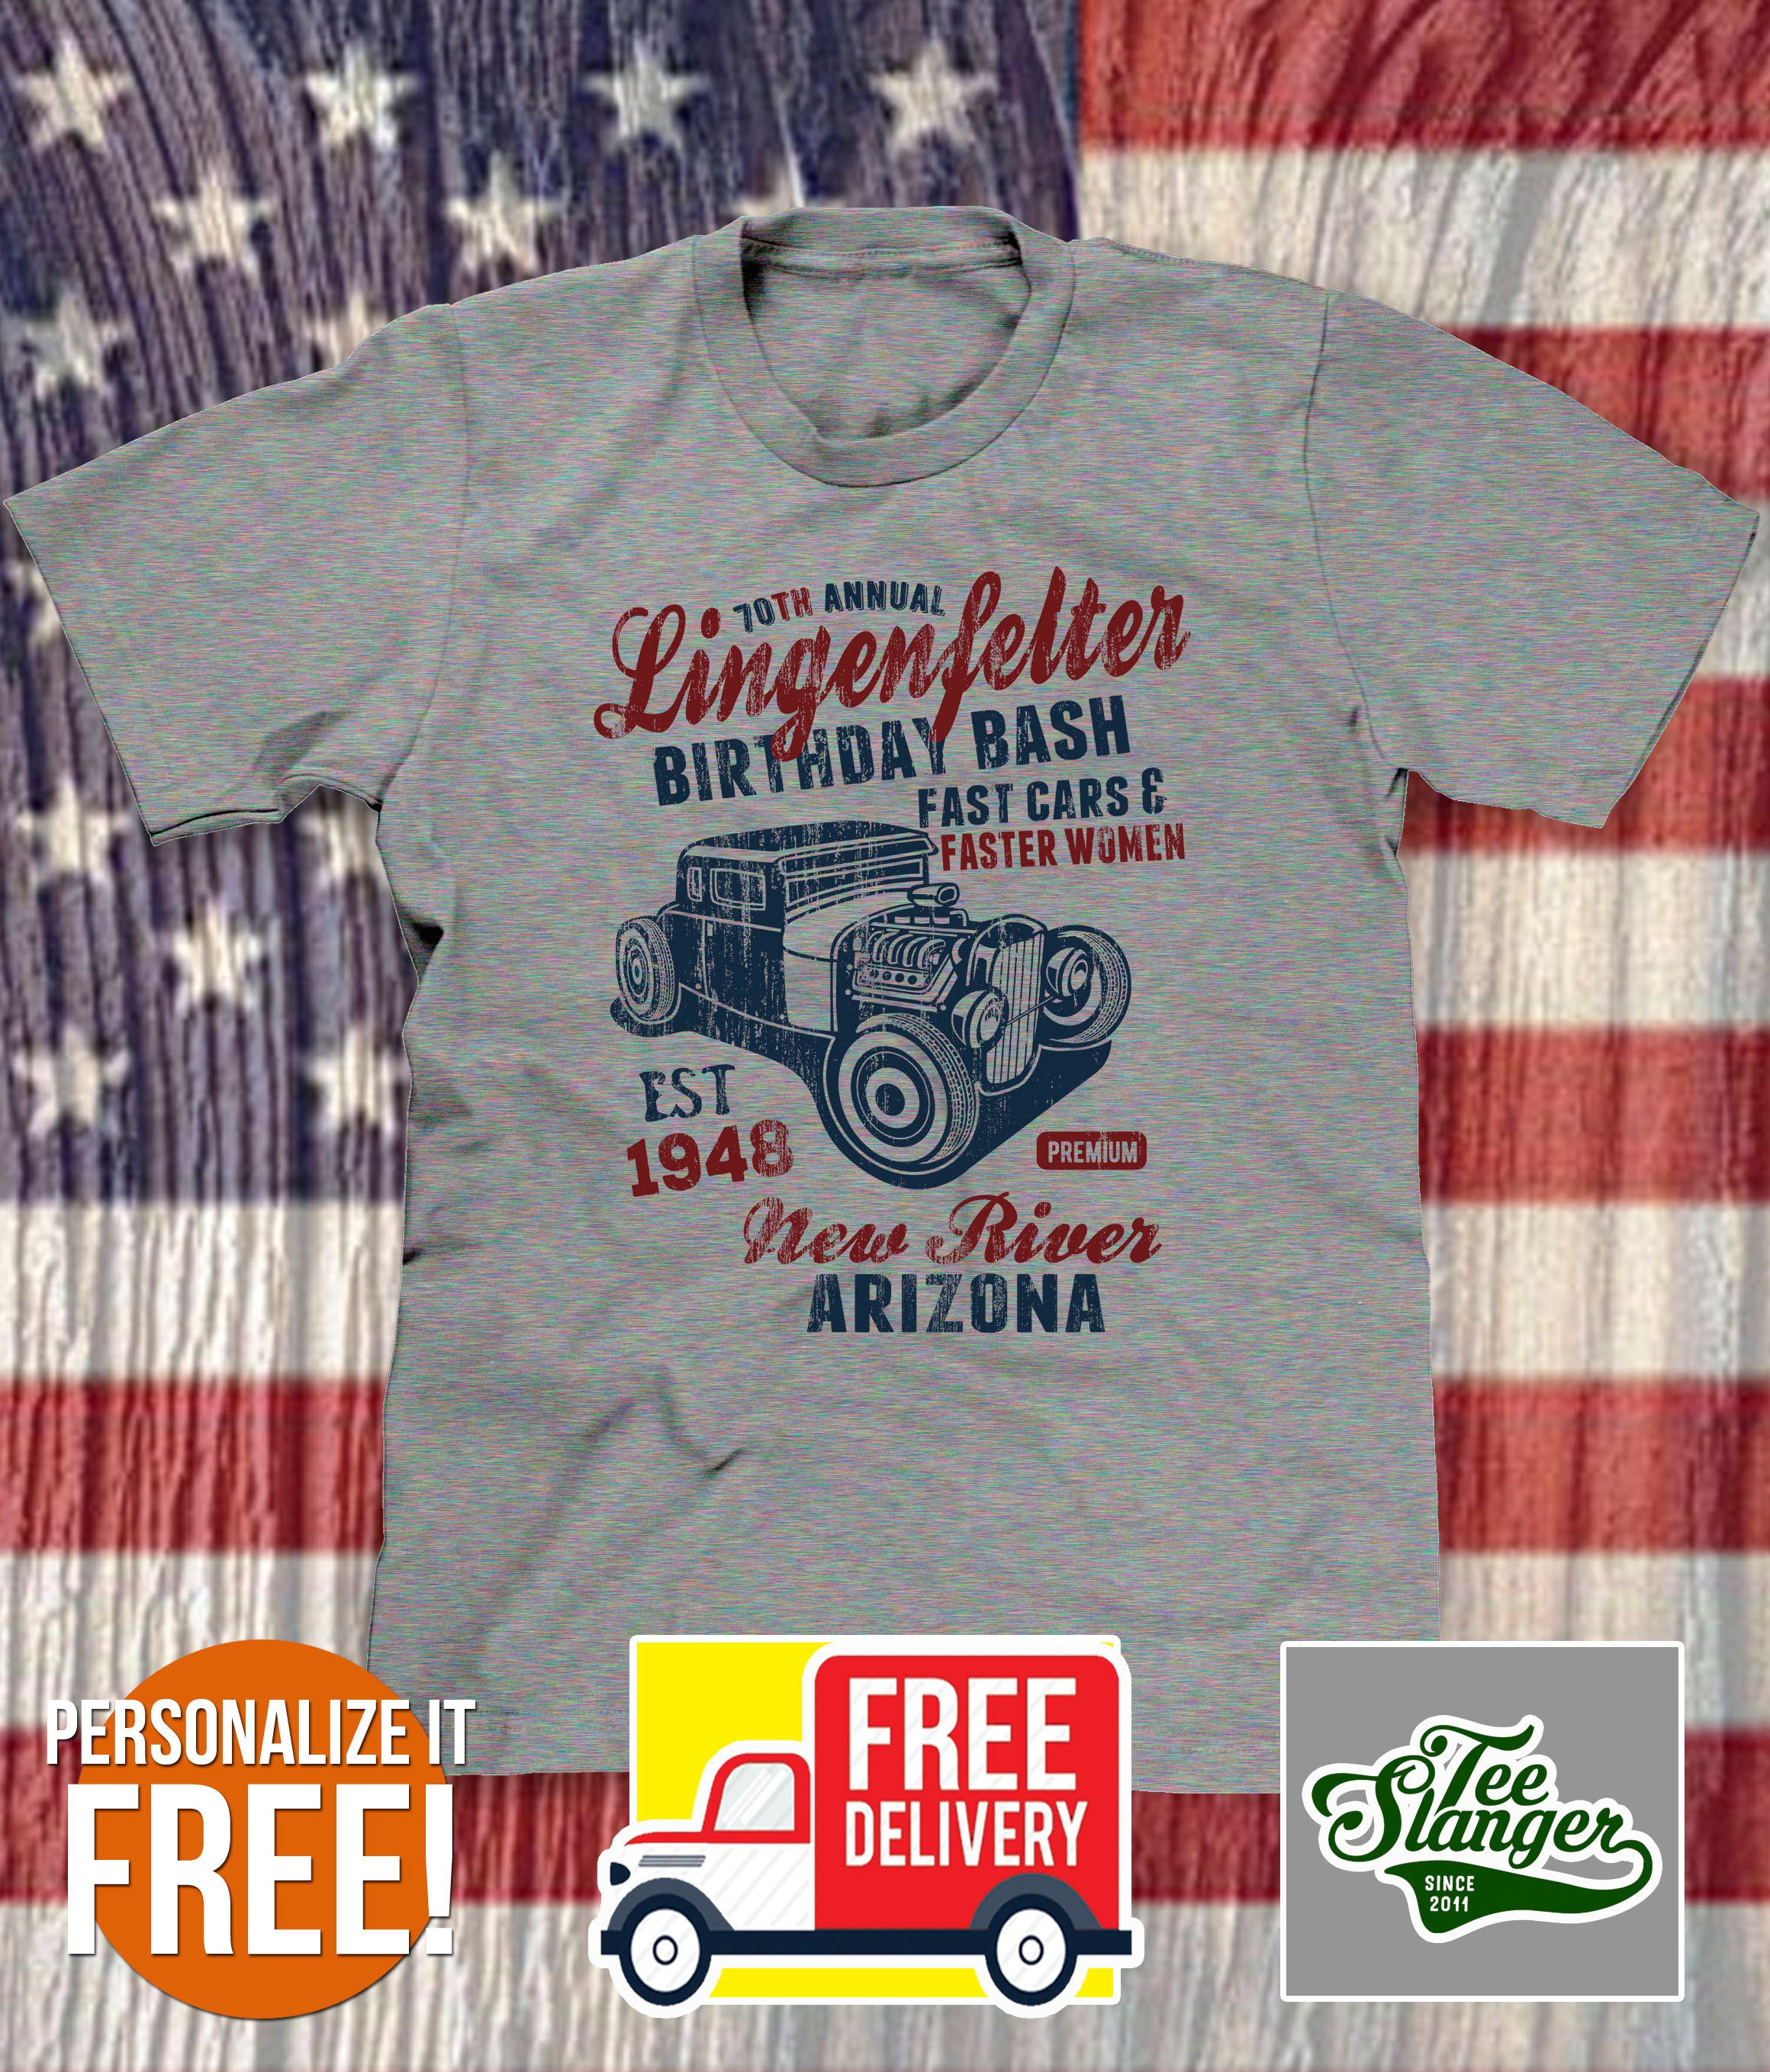 PERSONALIZED HOT ROD BIRTHDAY T-SHIRT